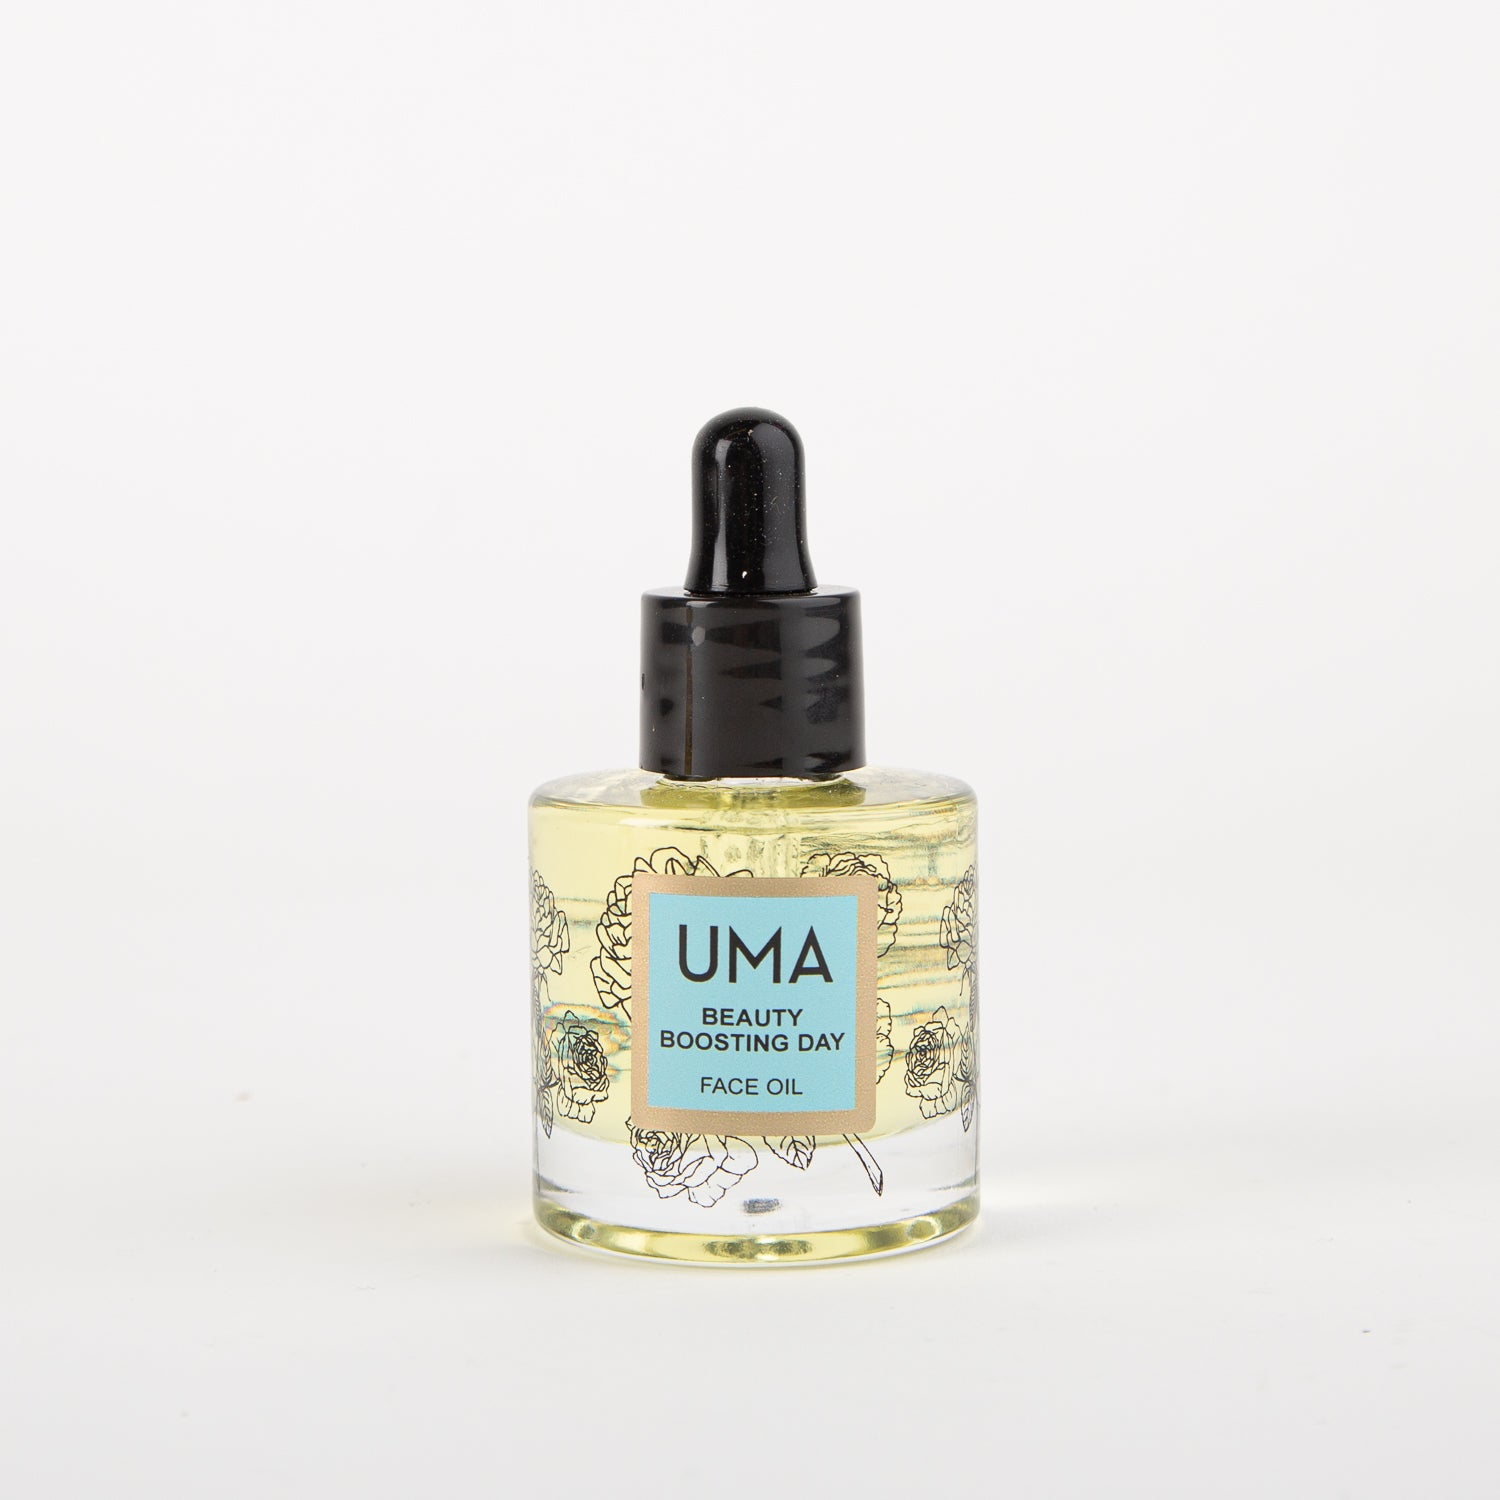 beauty boosting day face oil by UMA at Secret Location Concept Store